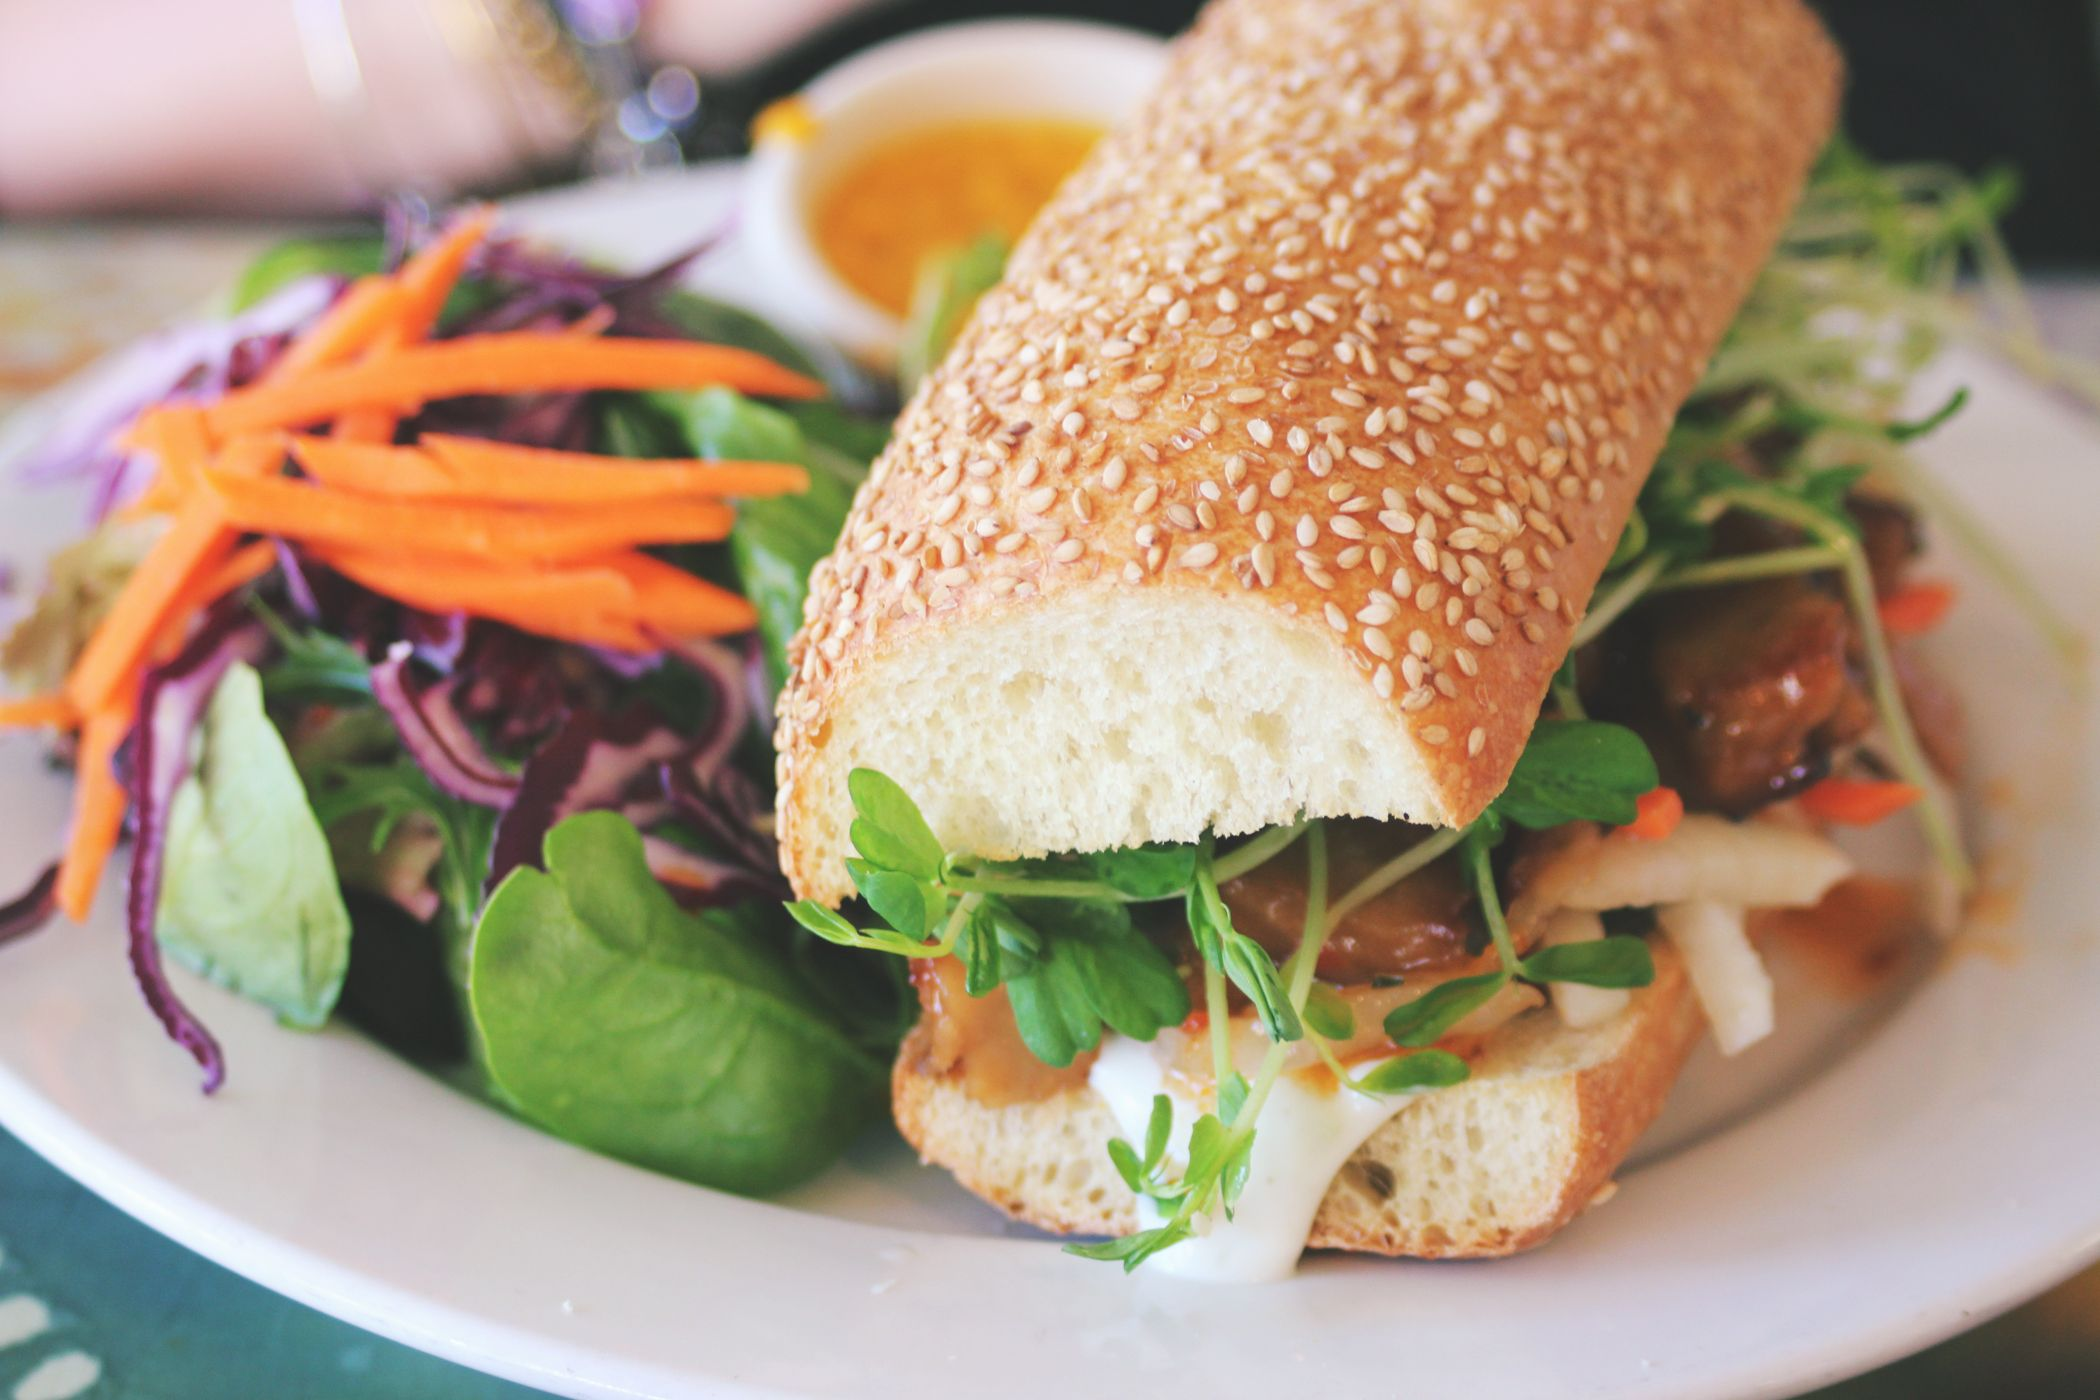 Review Of This Yummy Vegan Bahn Mi From Good Karma Red Bank Nj